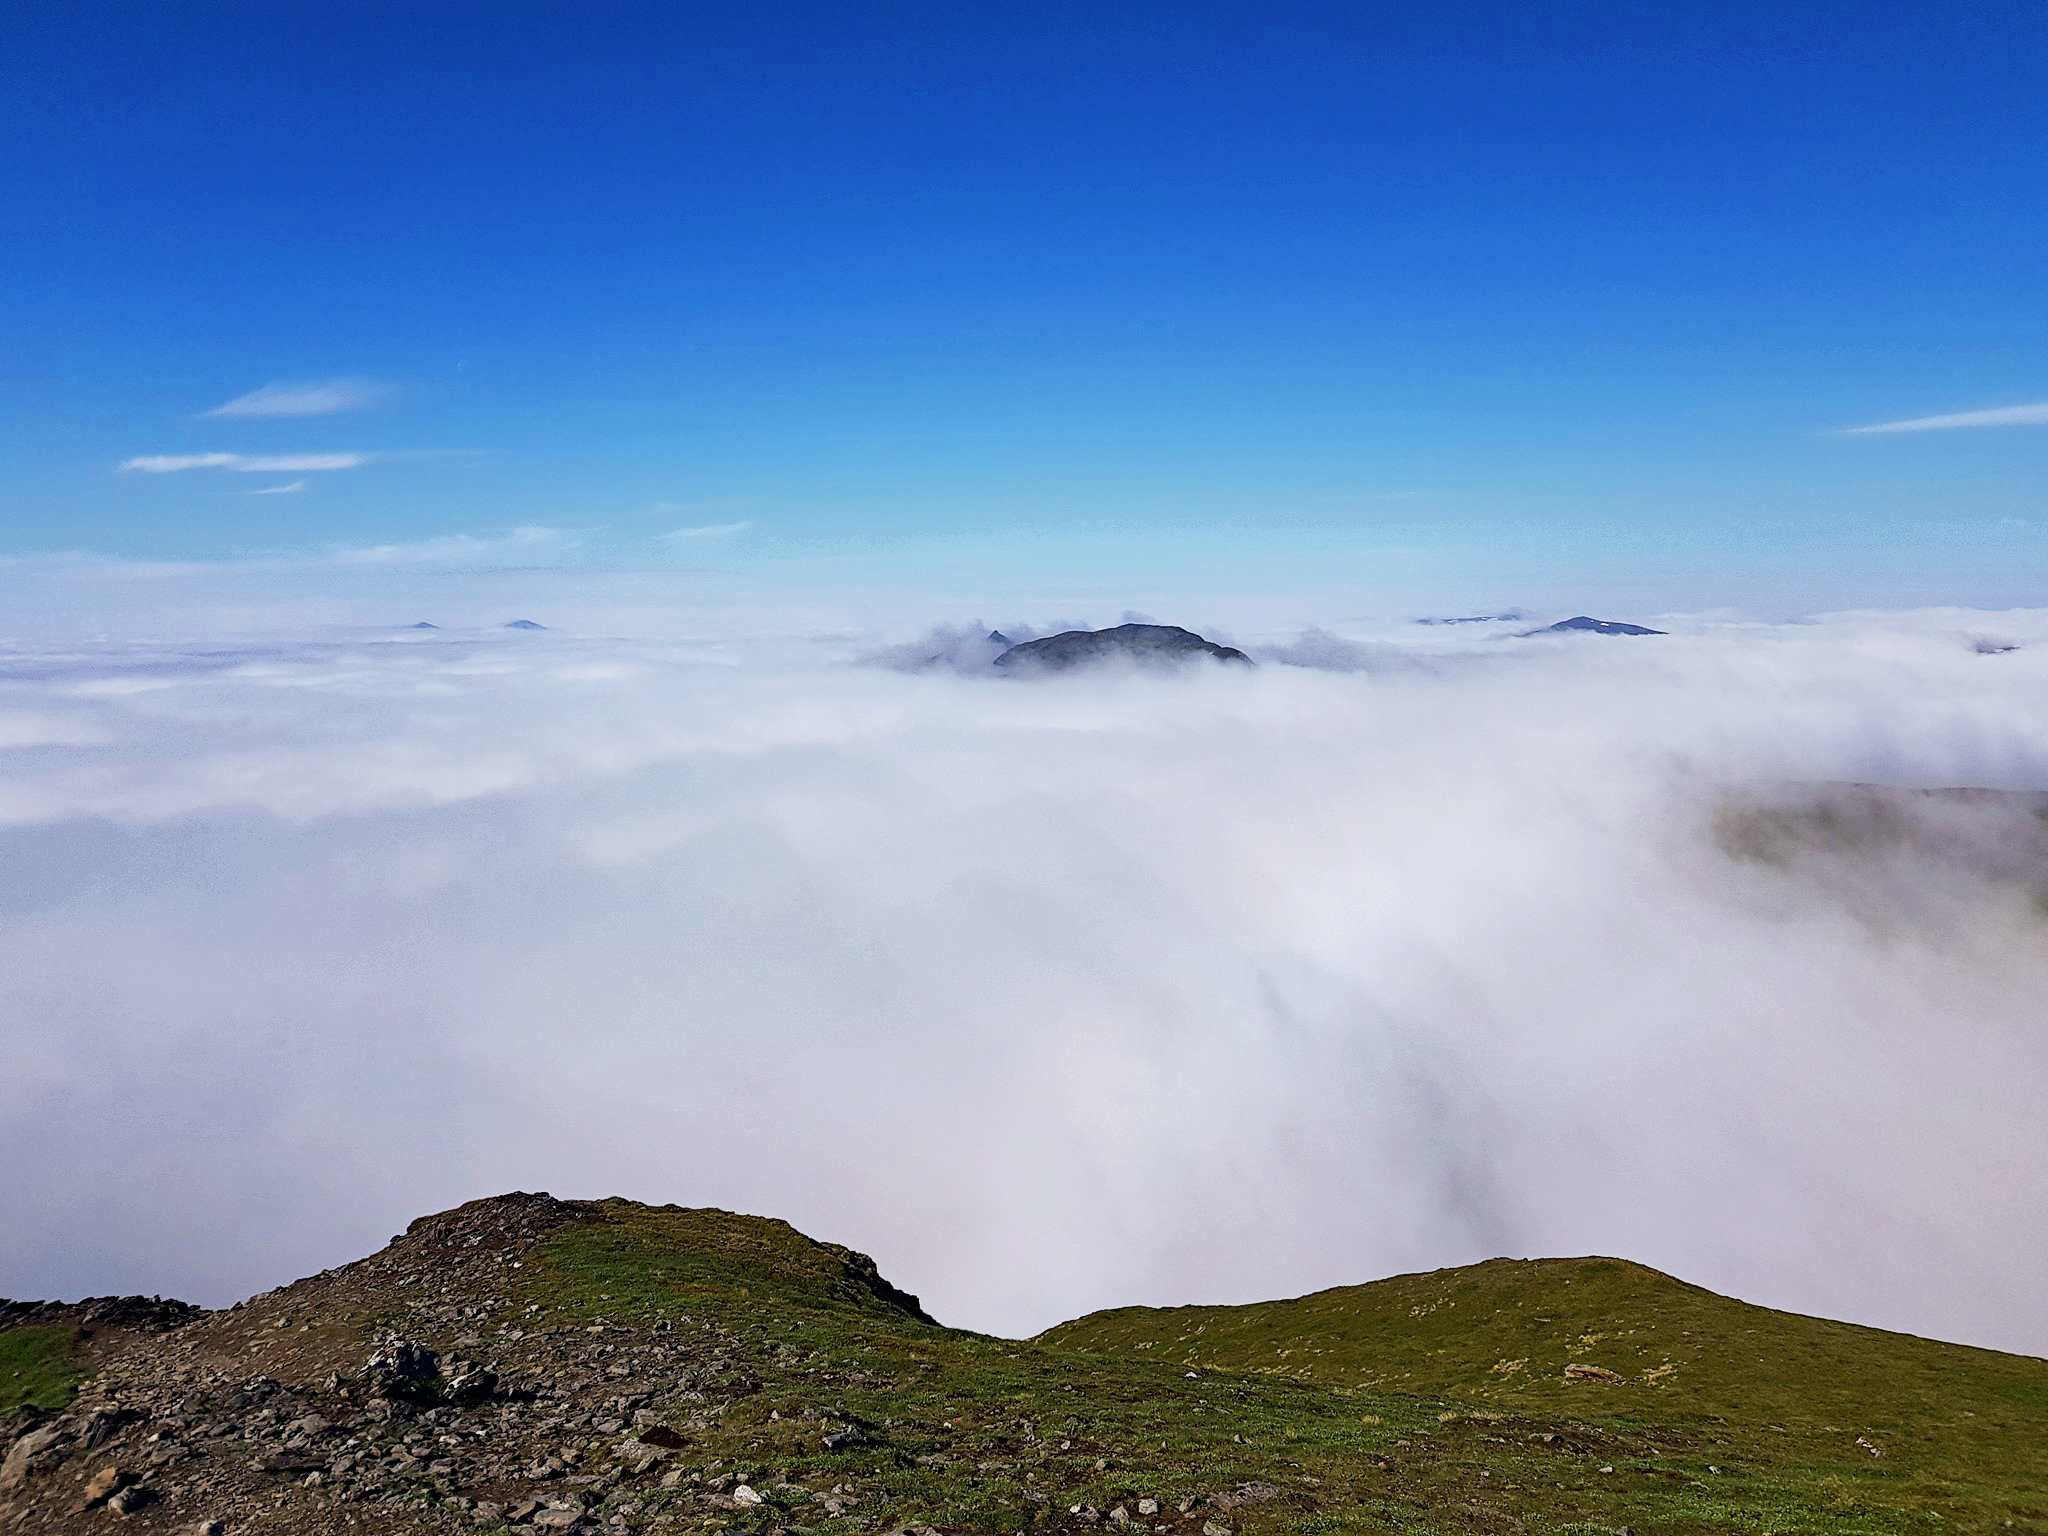 Above The Cloud Base1